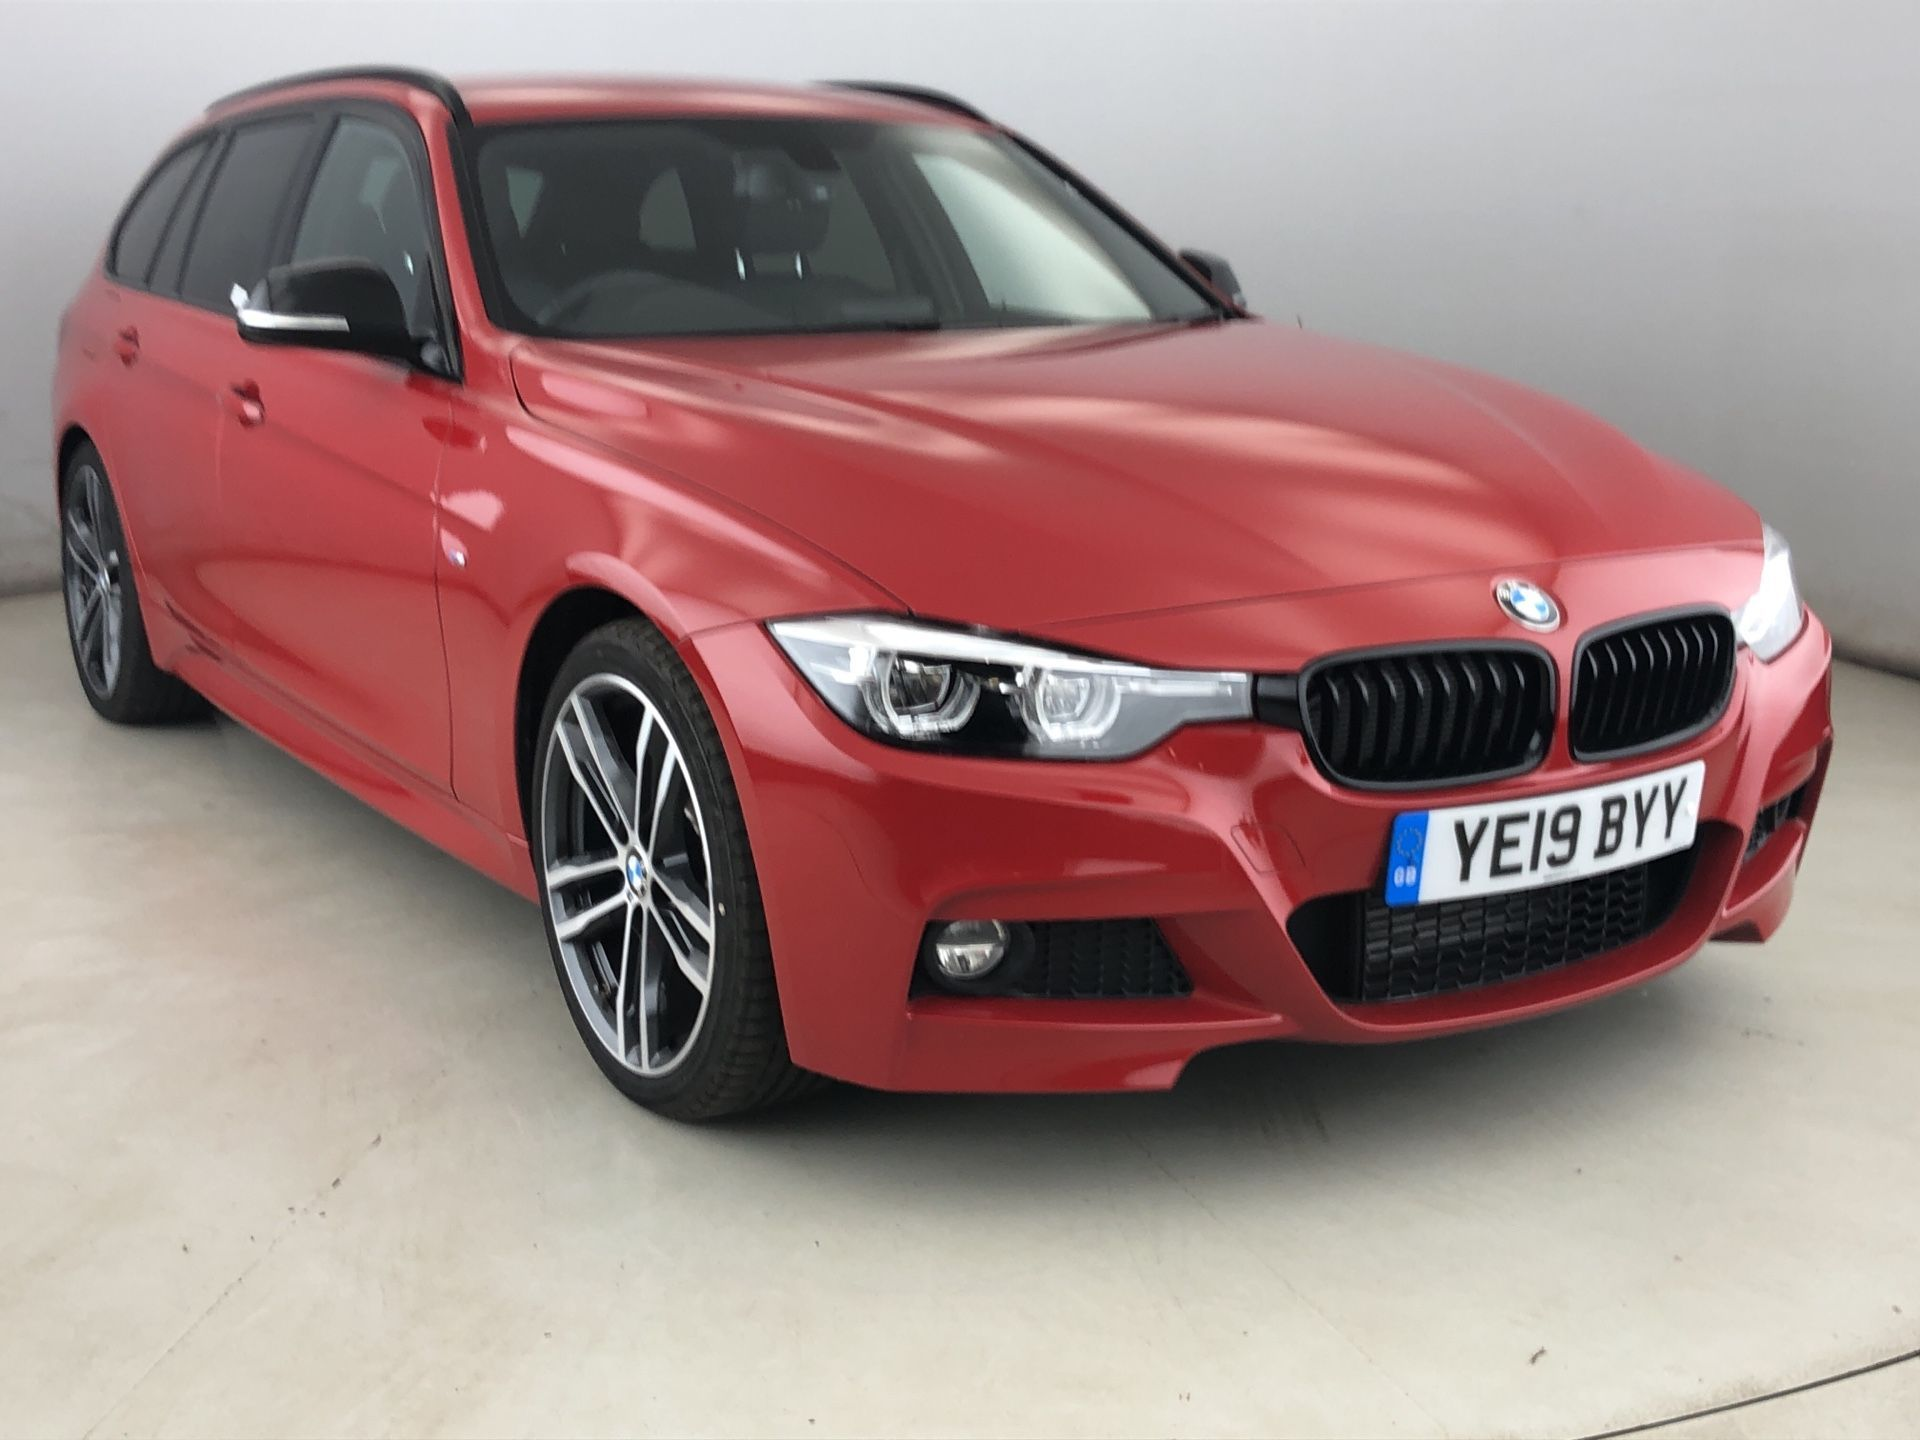 Image 1 - BMW 320d M Sport Shadow Edition Touring (YE19BYY)